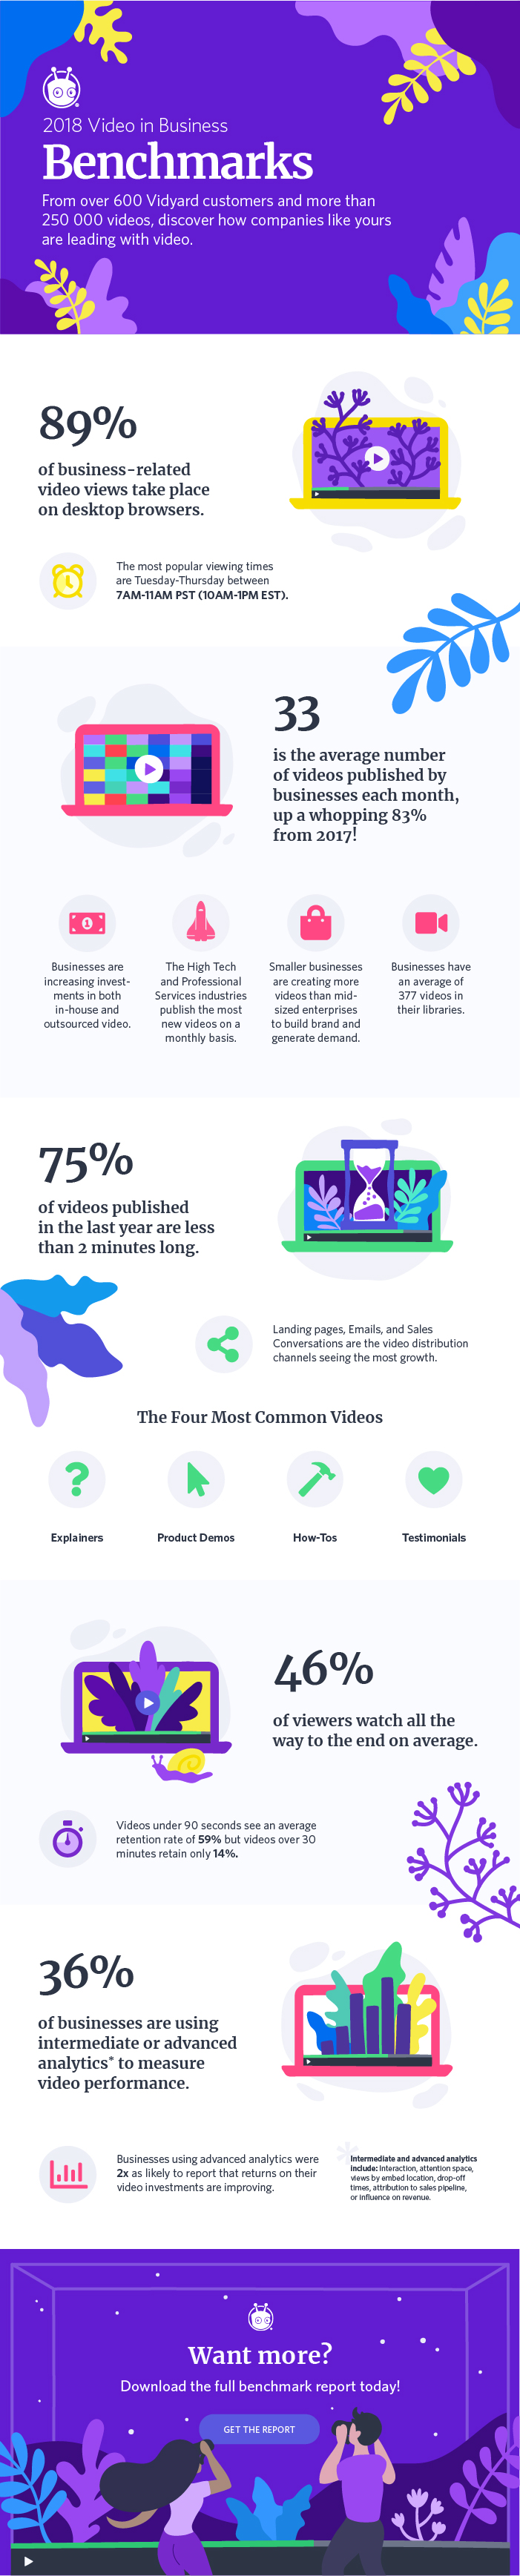 Video Marketing Benchmarks You Need to See [Infographic]